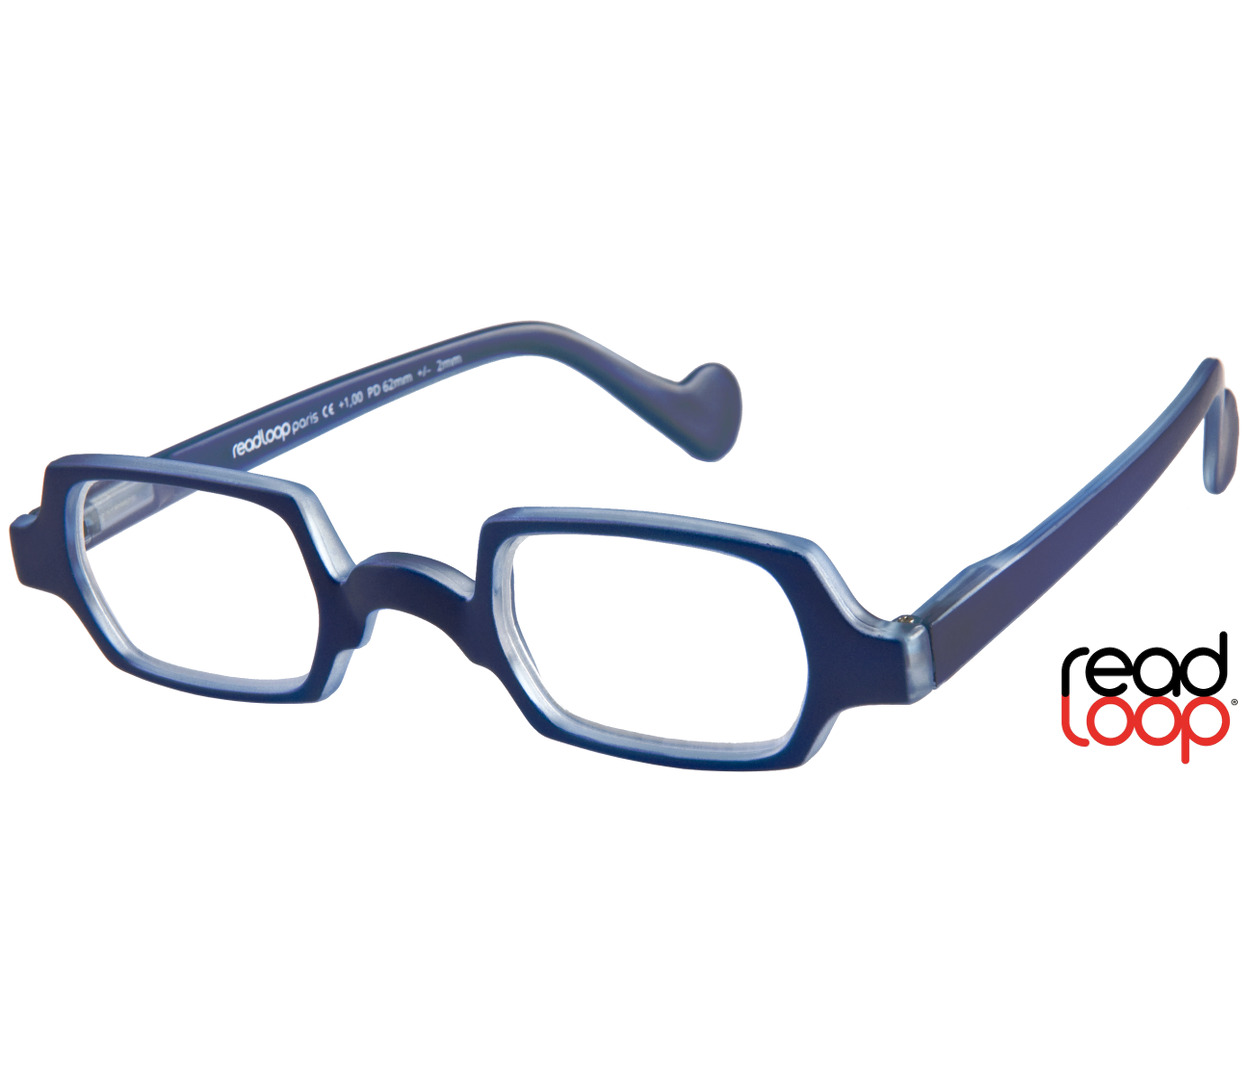 Main Image (Angle) - Culture (Blue) Retro Reading Glasses